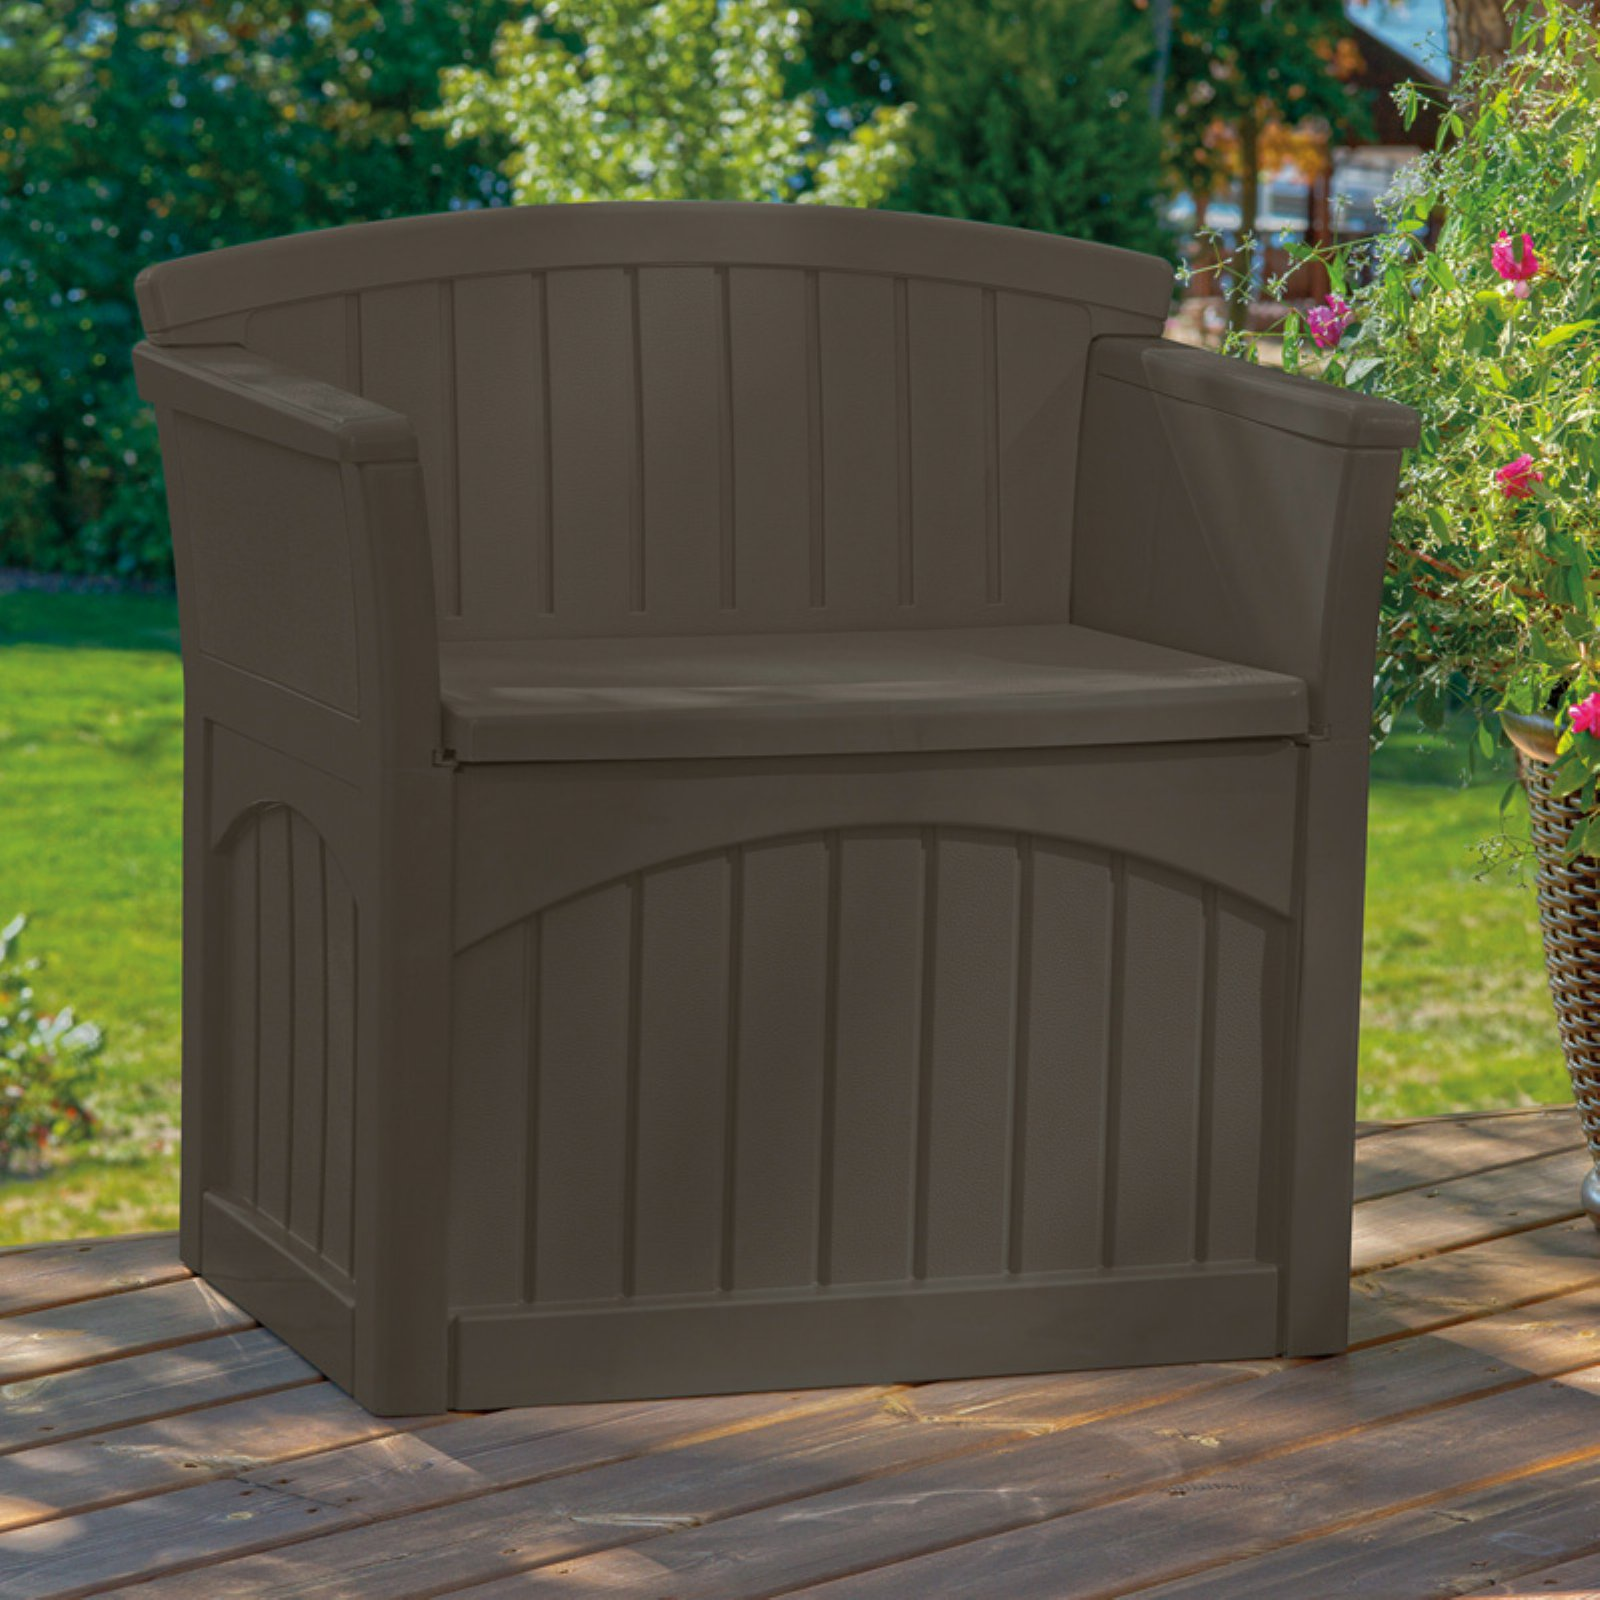 Suncast 31 Gallon Patio Seat